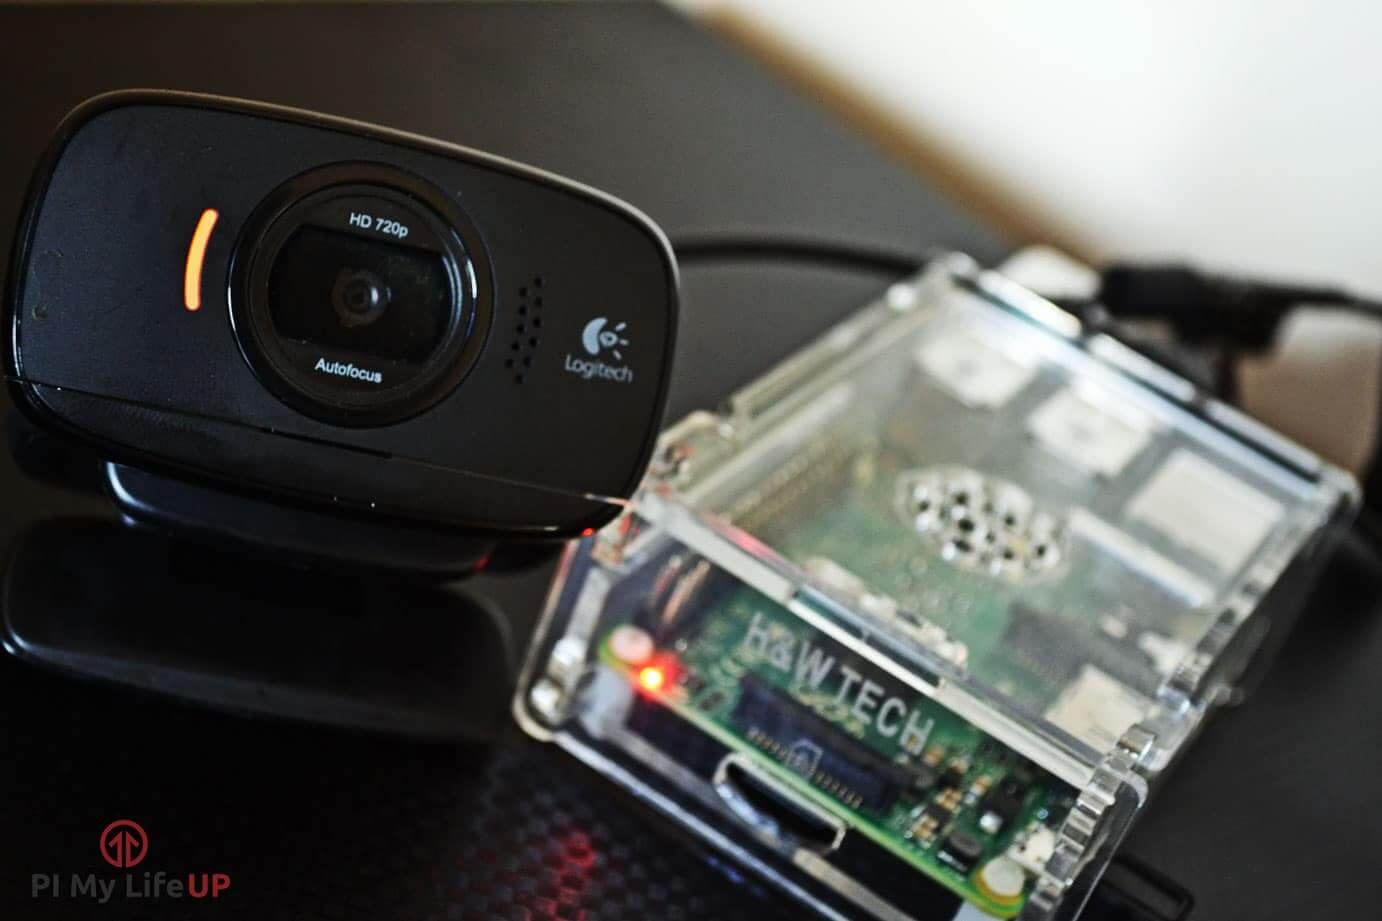 raspberry pi camera projects An easy raspberry pi security camera and monitor project for beginners use a raspberry pi camera as a video monitor and motion detector to stream live video to a web browser, capture video and images.